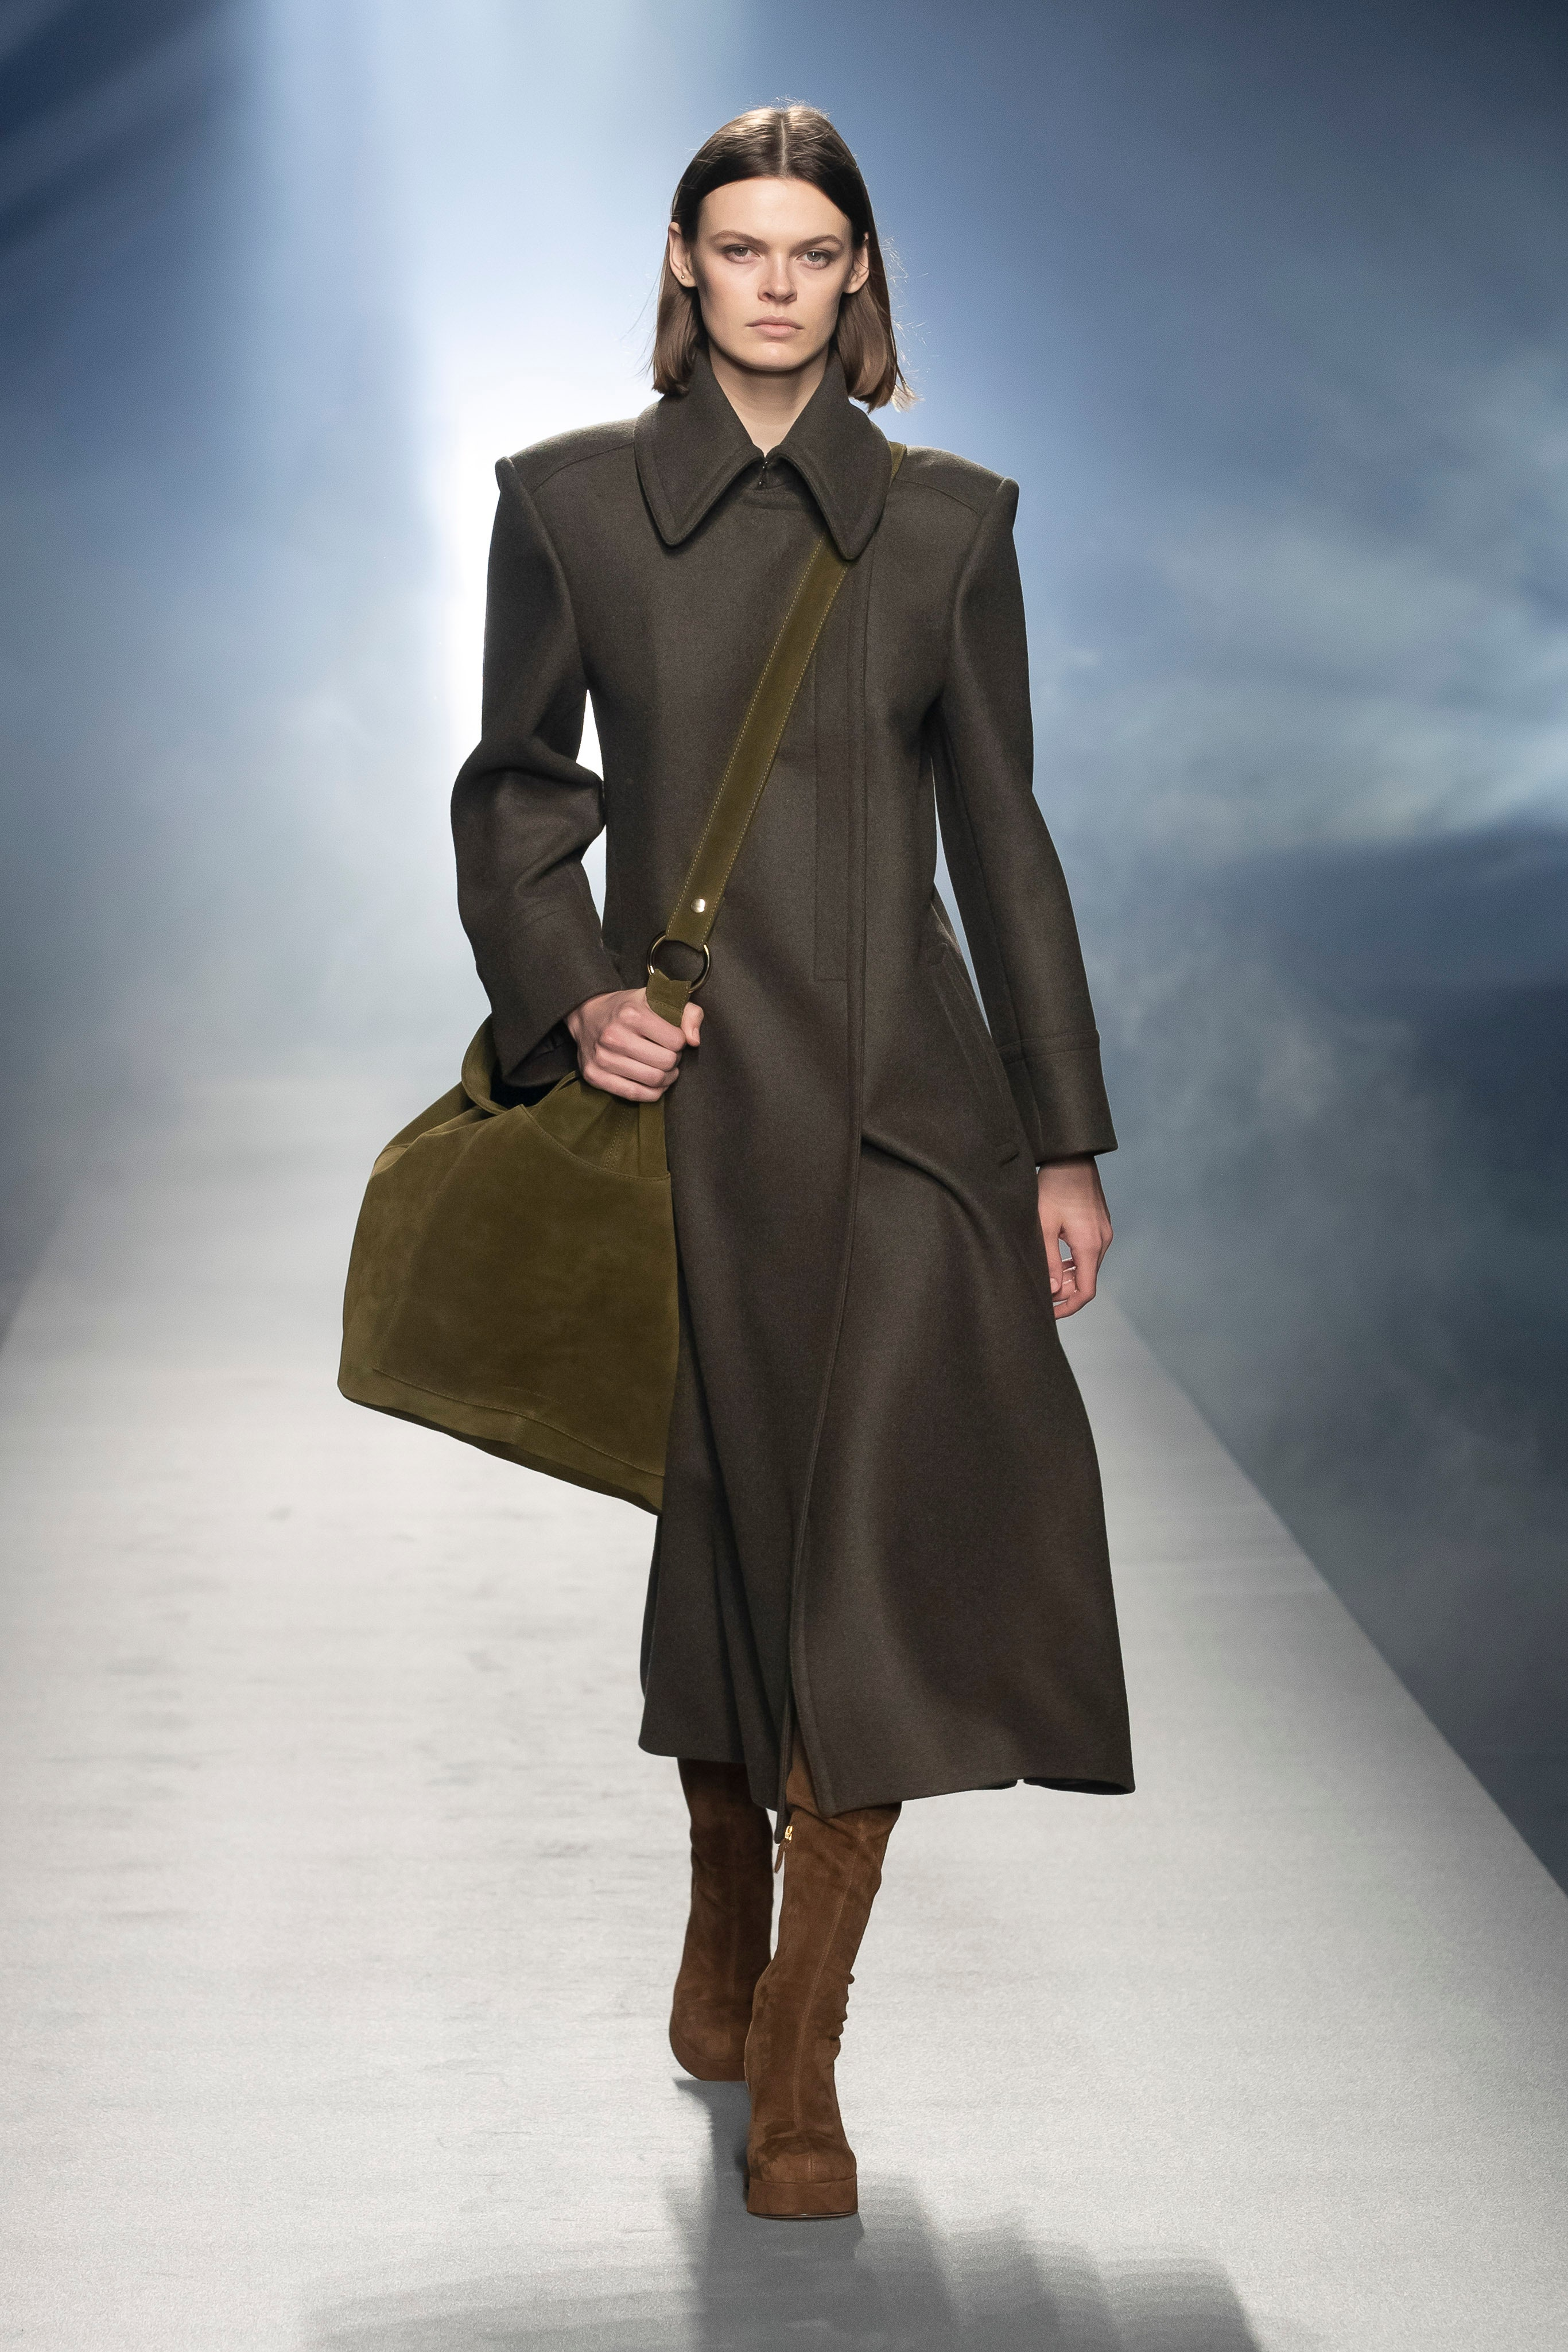 Alberta Ferretti Fall Winter 21